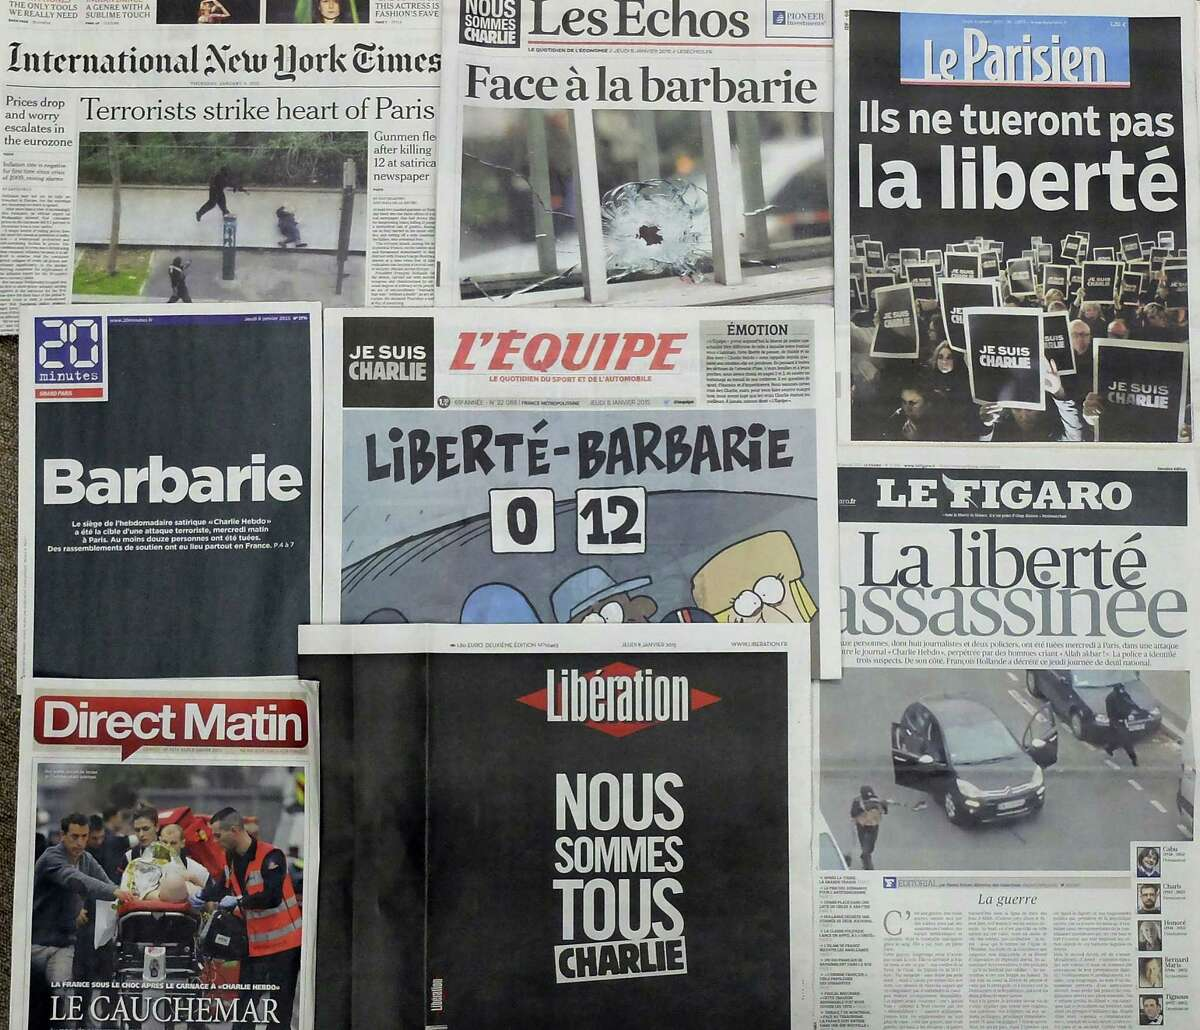 """Frontpages of French newspapers reporting about Wednesday's attack on a satirical newspaper in Paris are displayed in Paris Thursday, Jan. 8, 2015. Police hunted Thursday for two heavily armed men, one with possible links to al-Qaida, in the methodical killing of 12 people at the Charlie Hebdo that caricatured the Prophet Muhammed. The prime minister said the possibility of a new attack """"is our main concern"""" and announced several overnight arrests. (AP Photo/Bertrand Combaldieu)"""